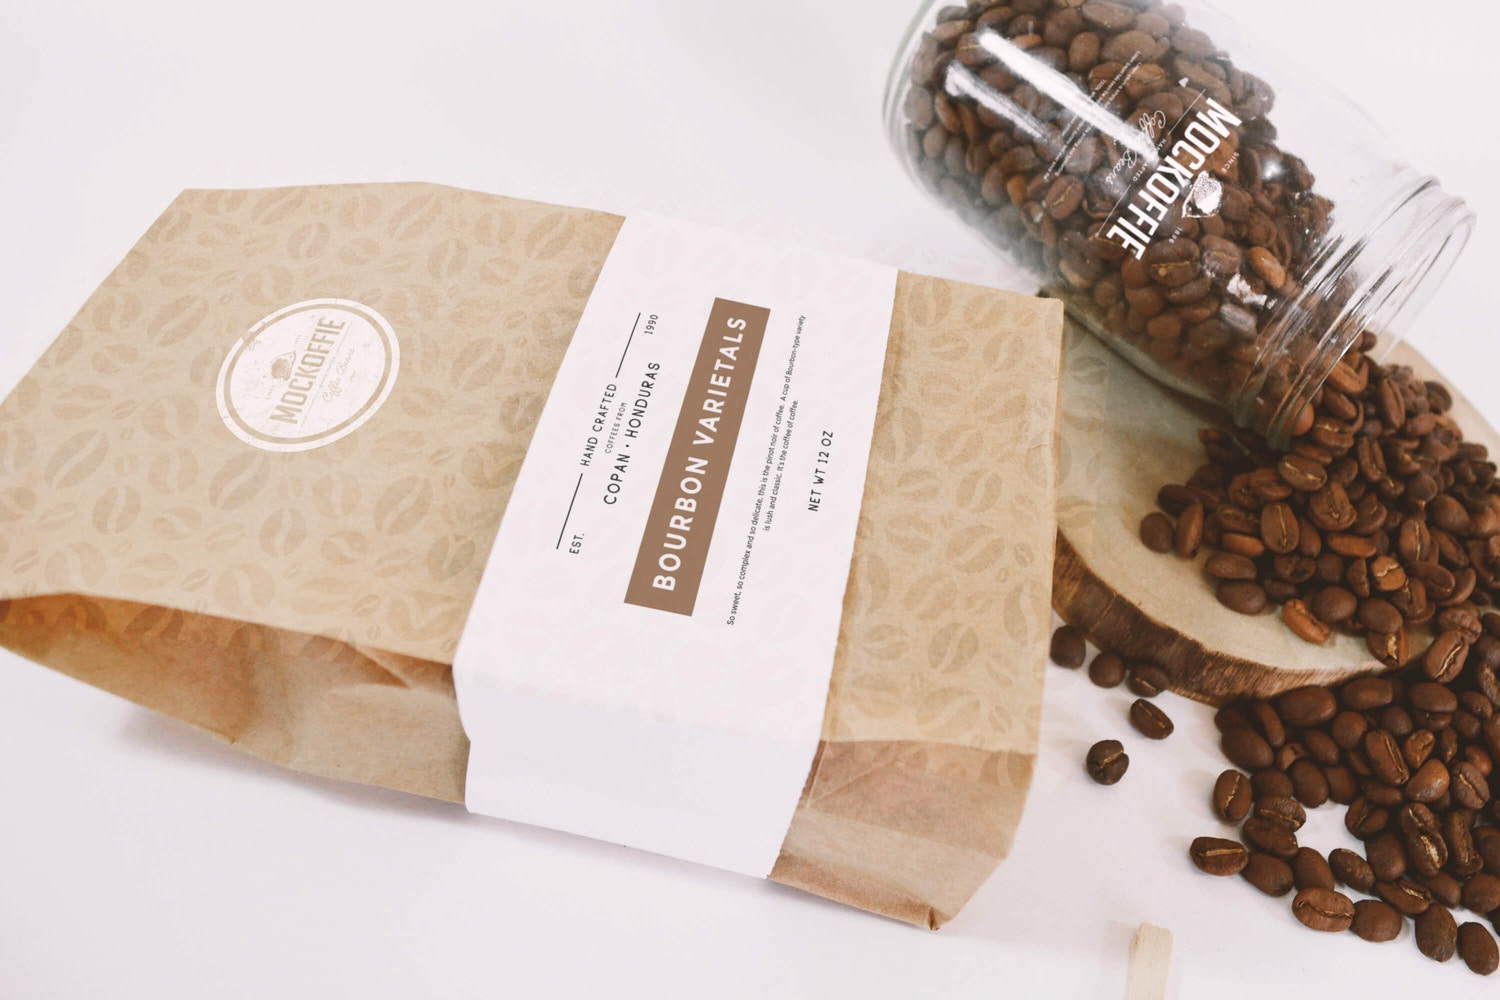 Coffee Bag and Glass Jar Mockup - Perspective Top View por Eduardo Mejia en Original Mockups